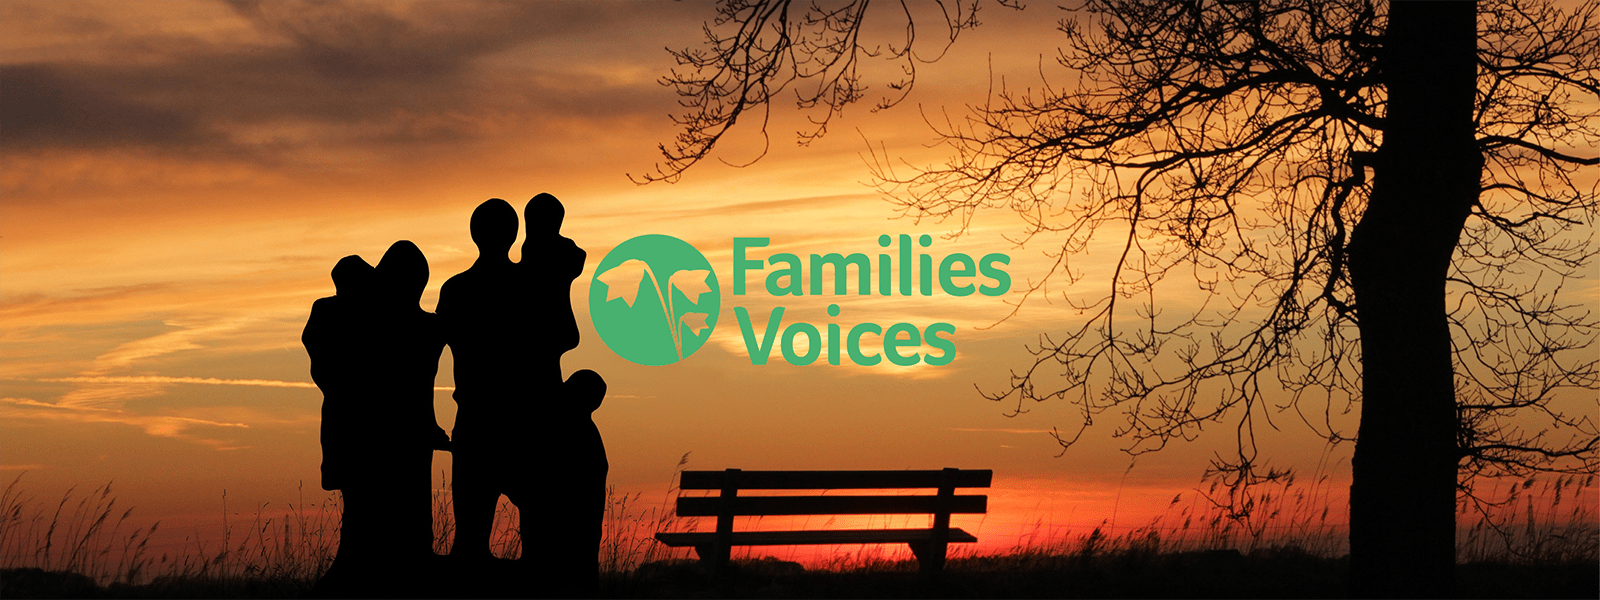 Families Voices Forum logo with the image of a family in silhouette at sunset